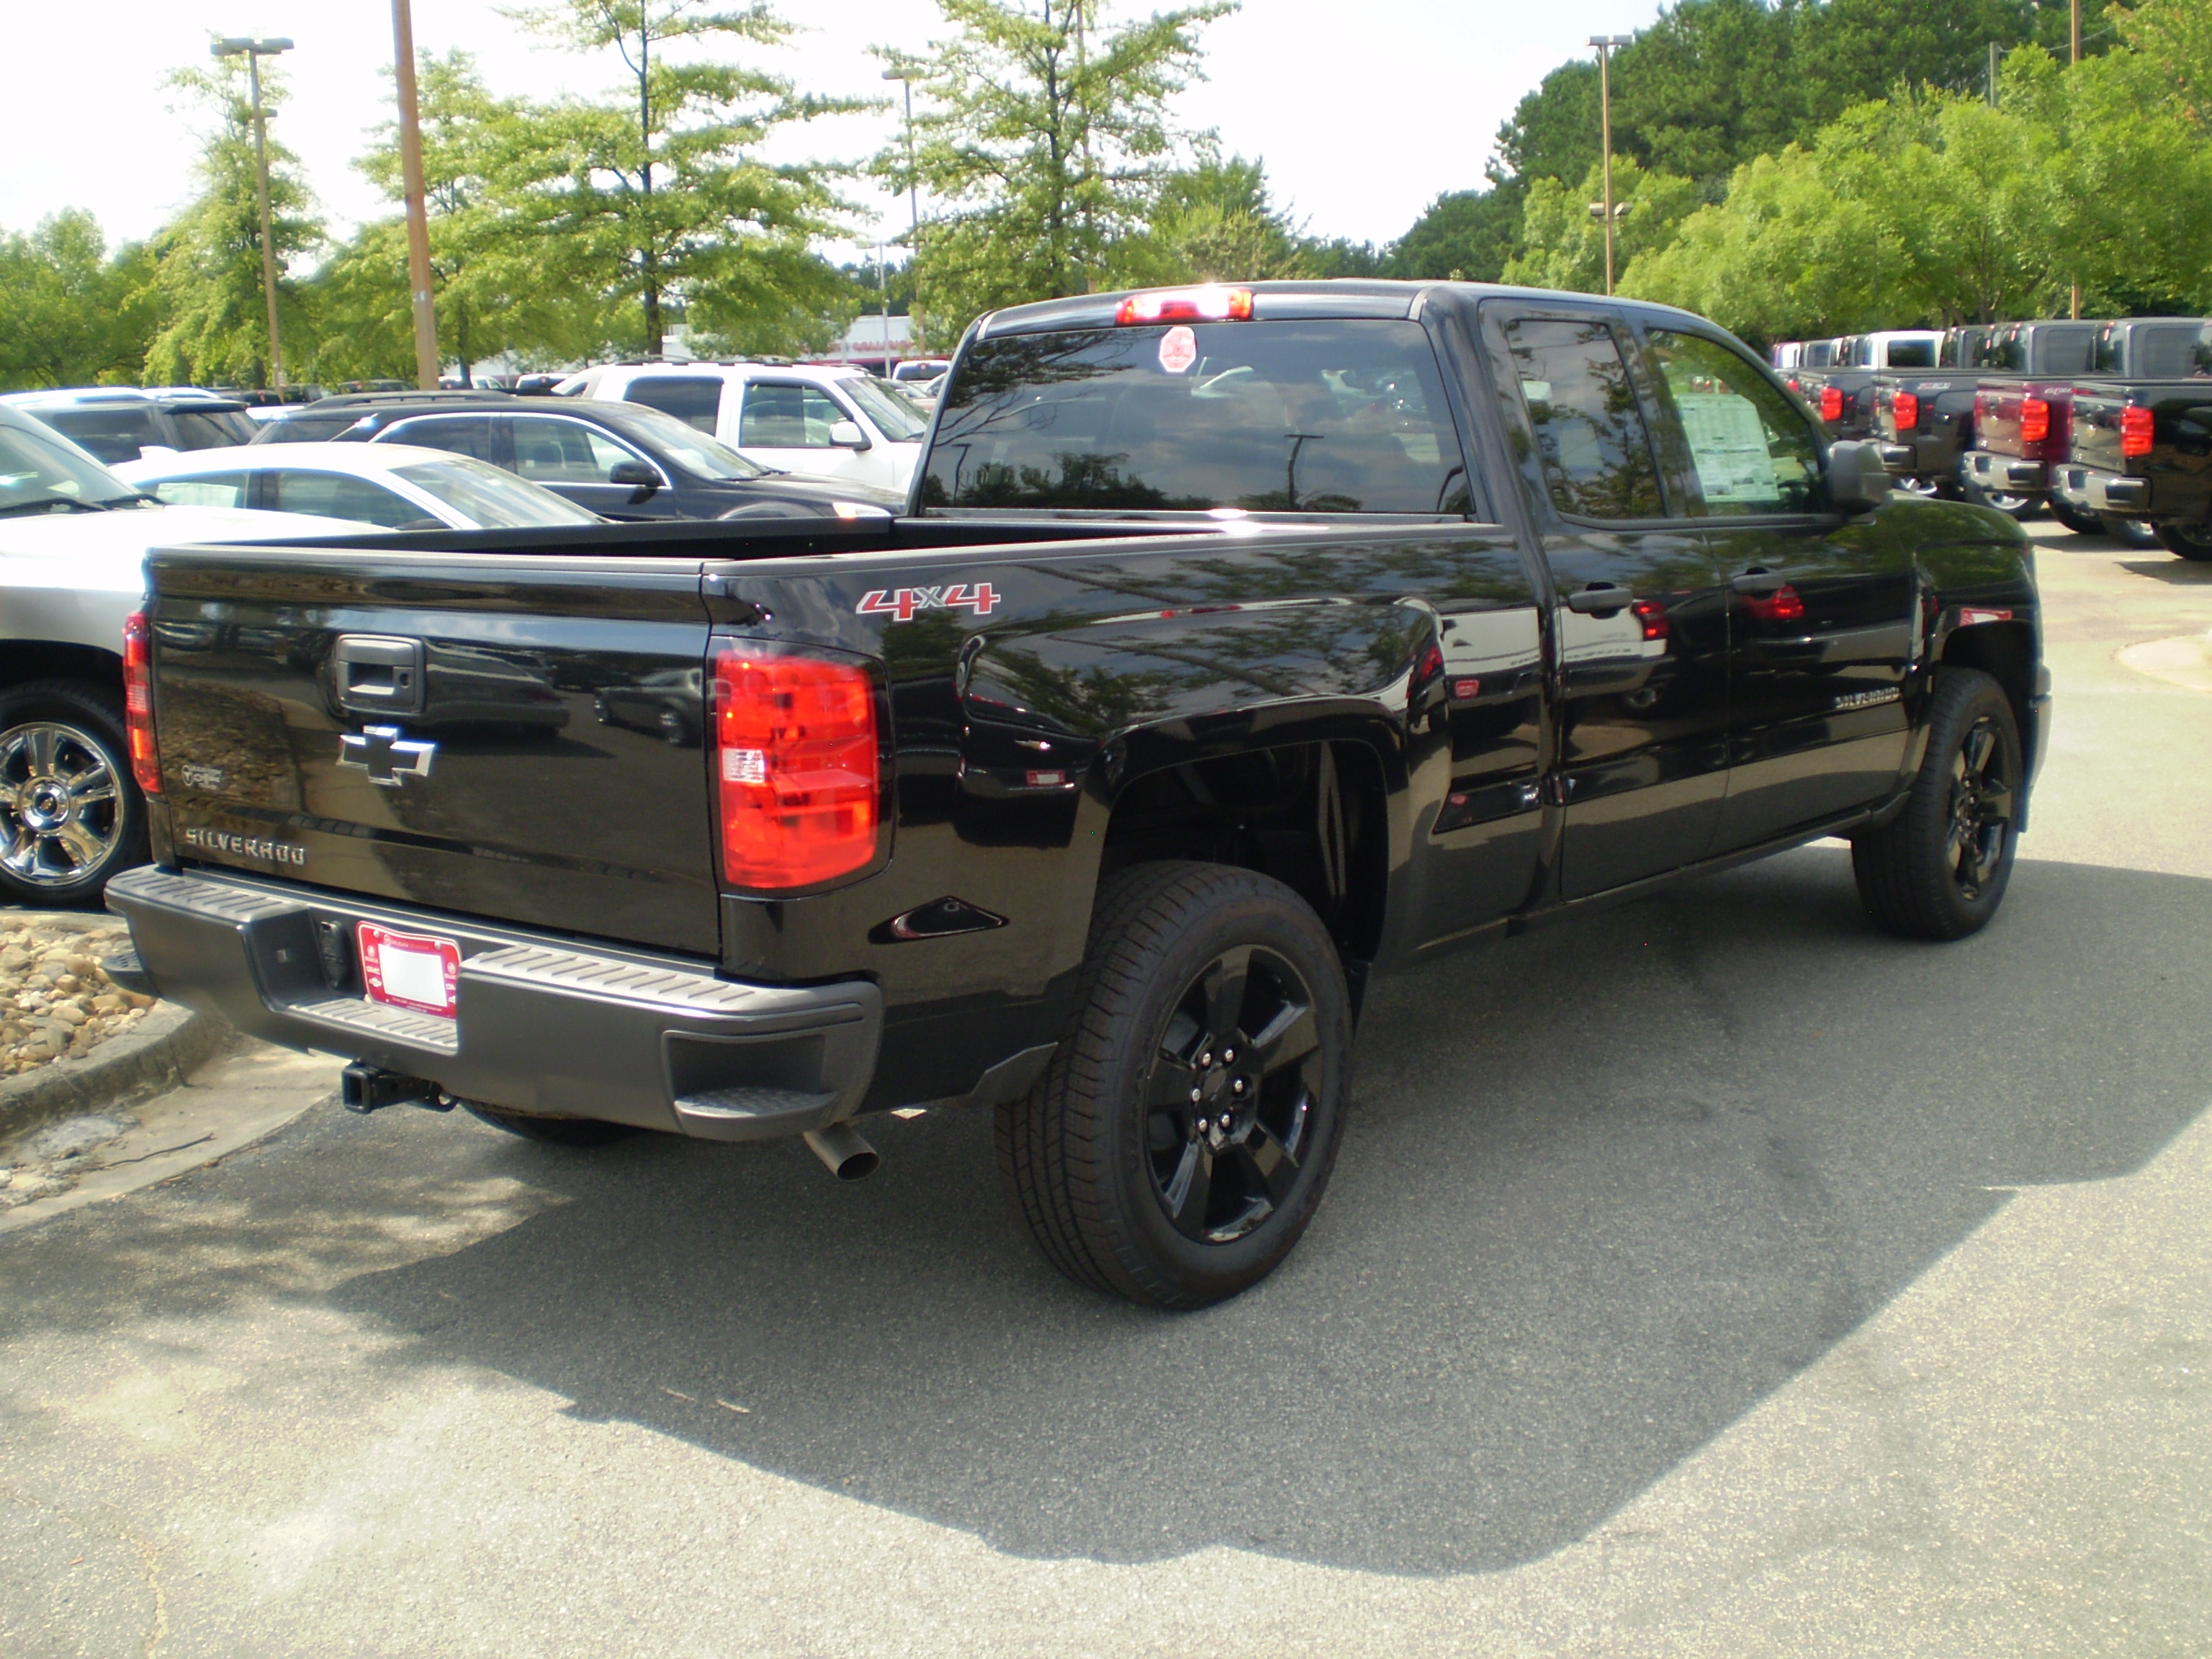 edition black wt silverado in out chevrolet jet car cab double